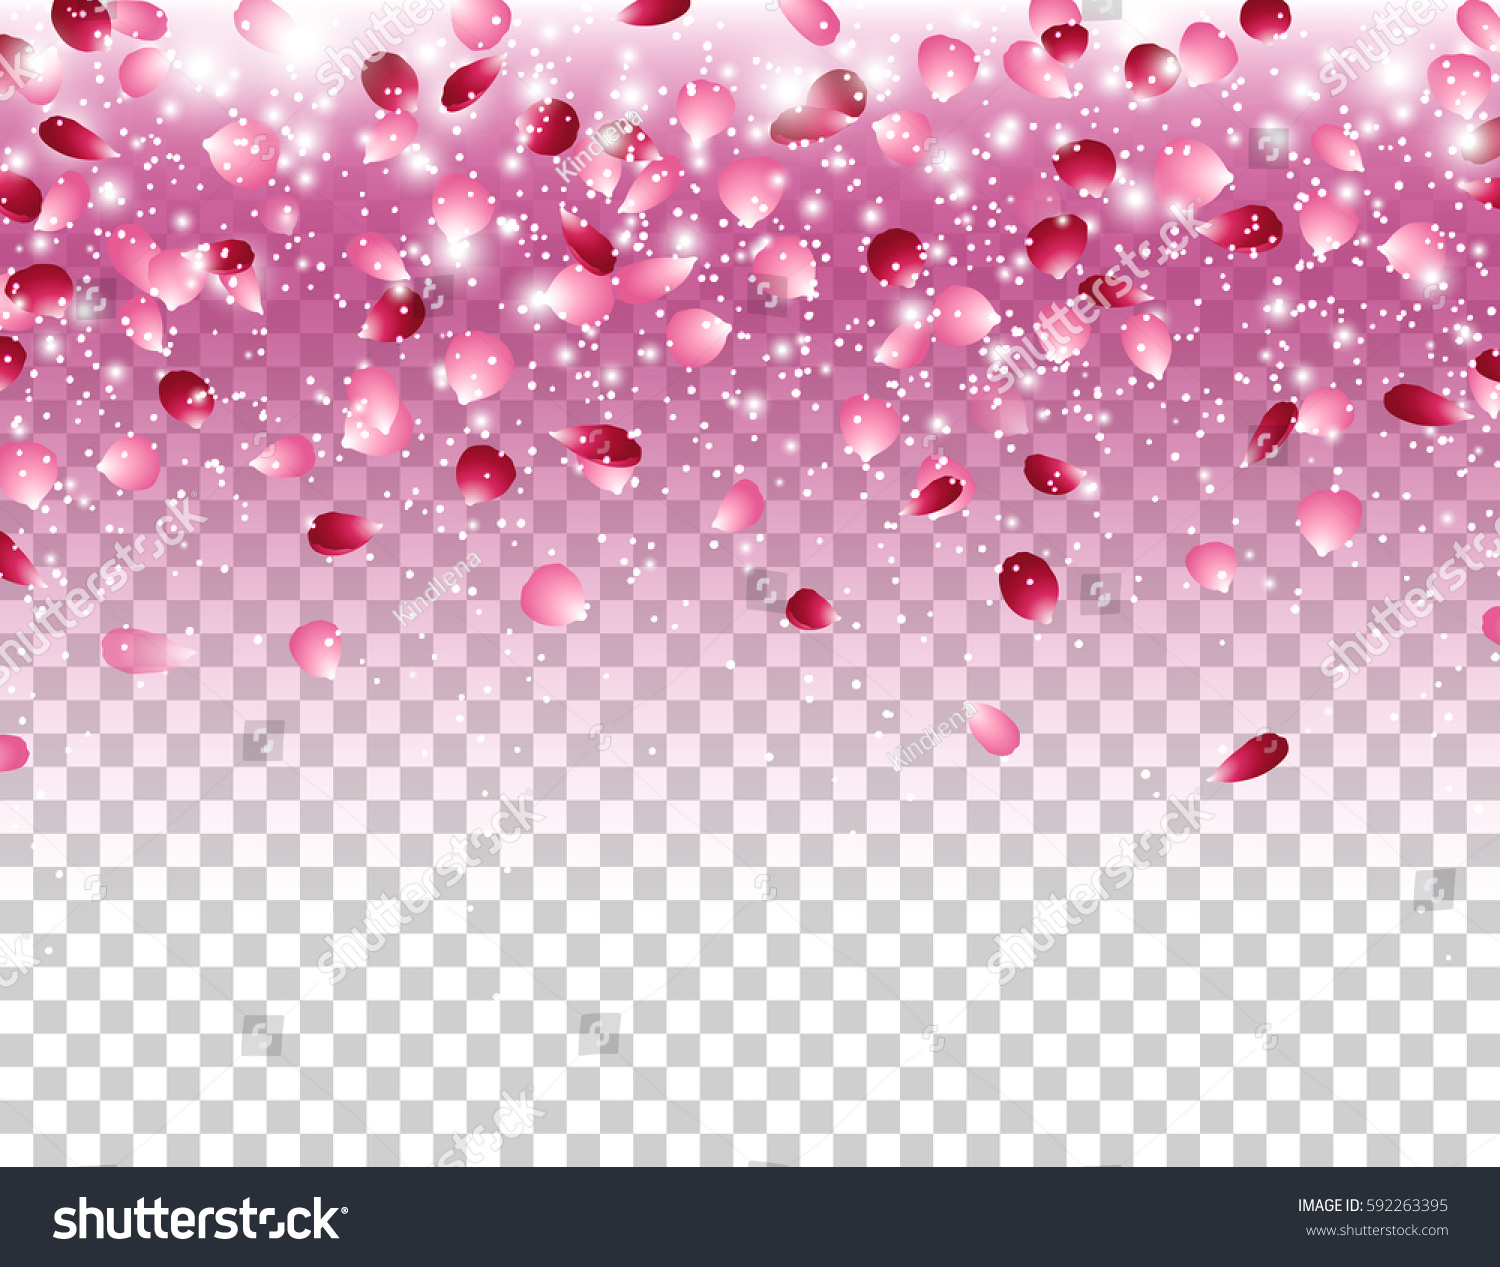 Pink Falling Flowers Petals Glowing Lights Stock Vector Royalty